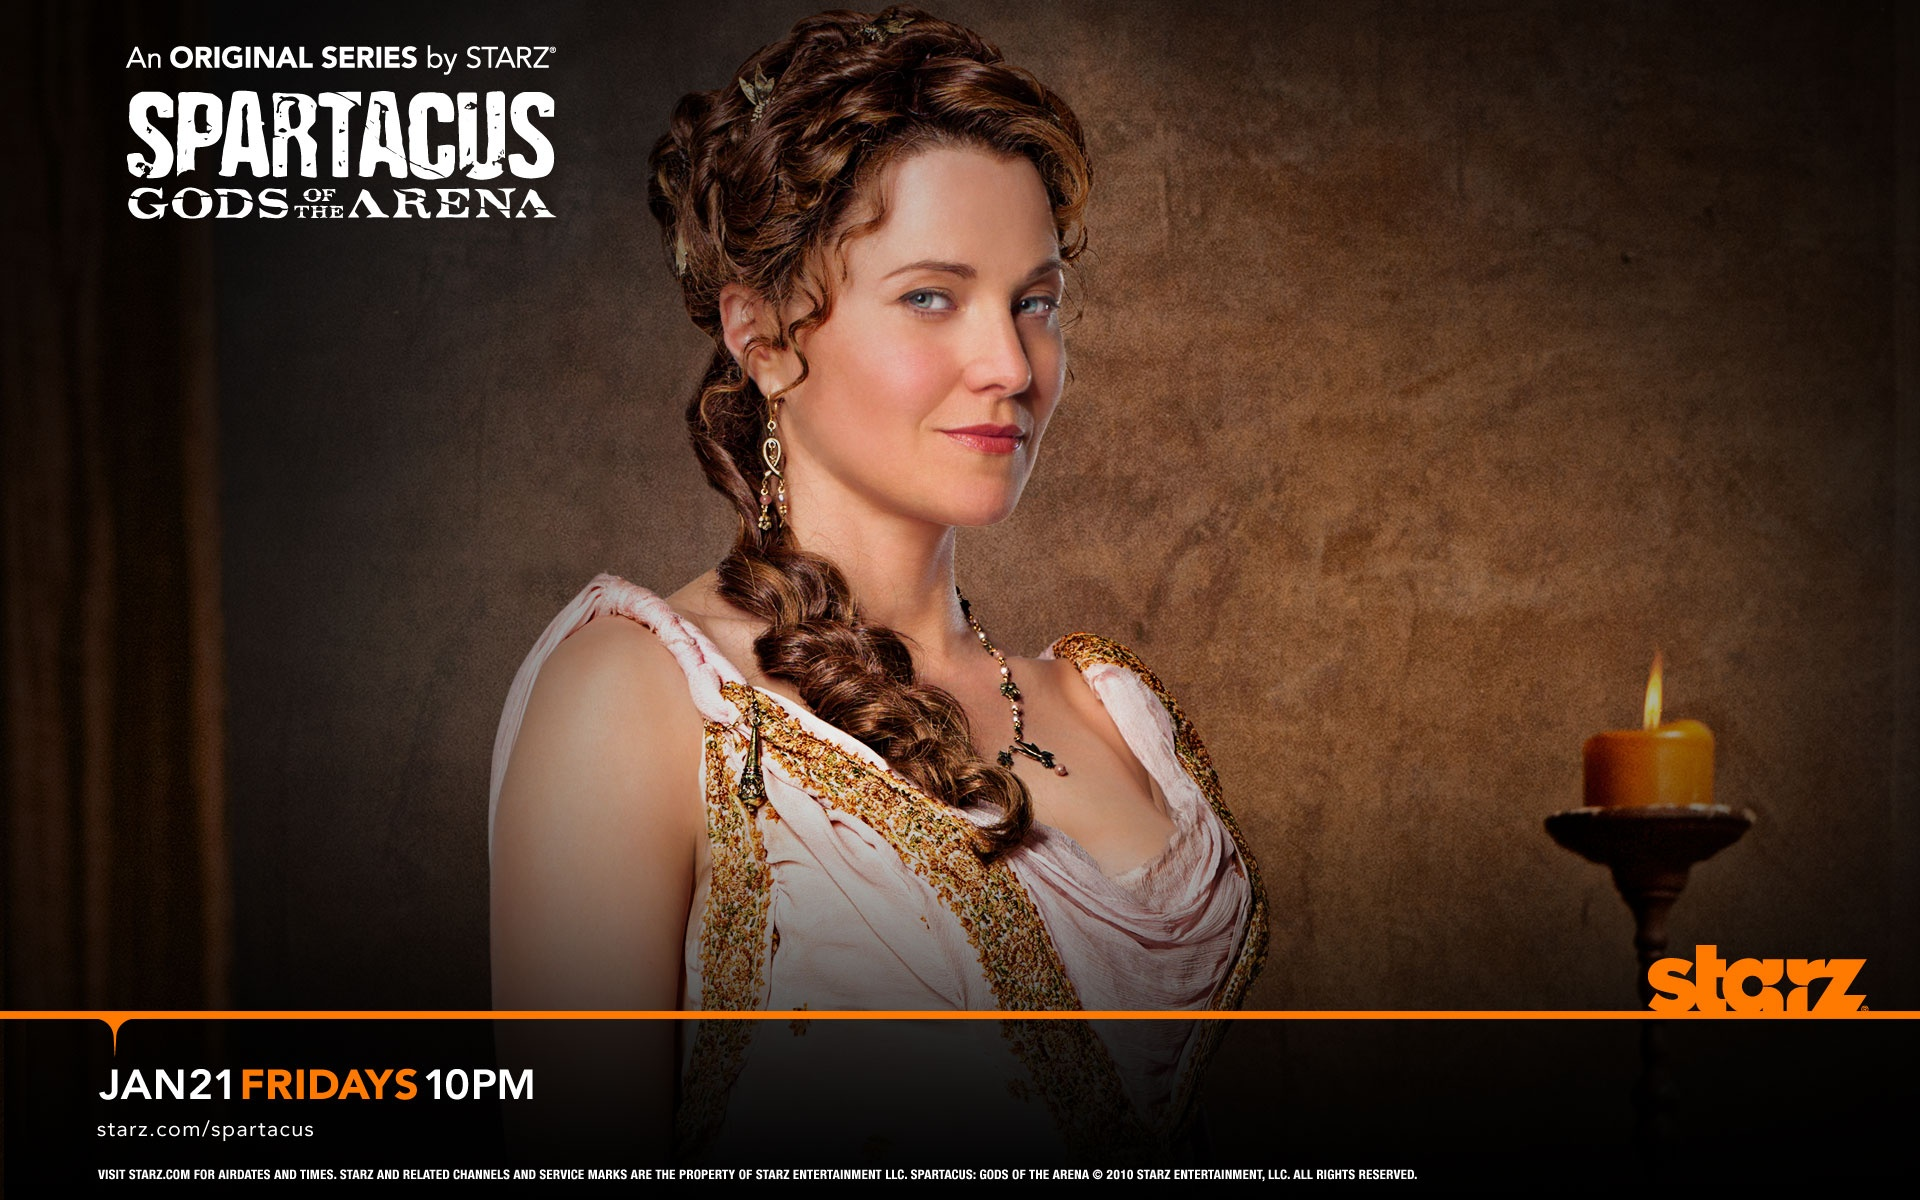 spartacus gods of arena episode 1 download